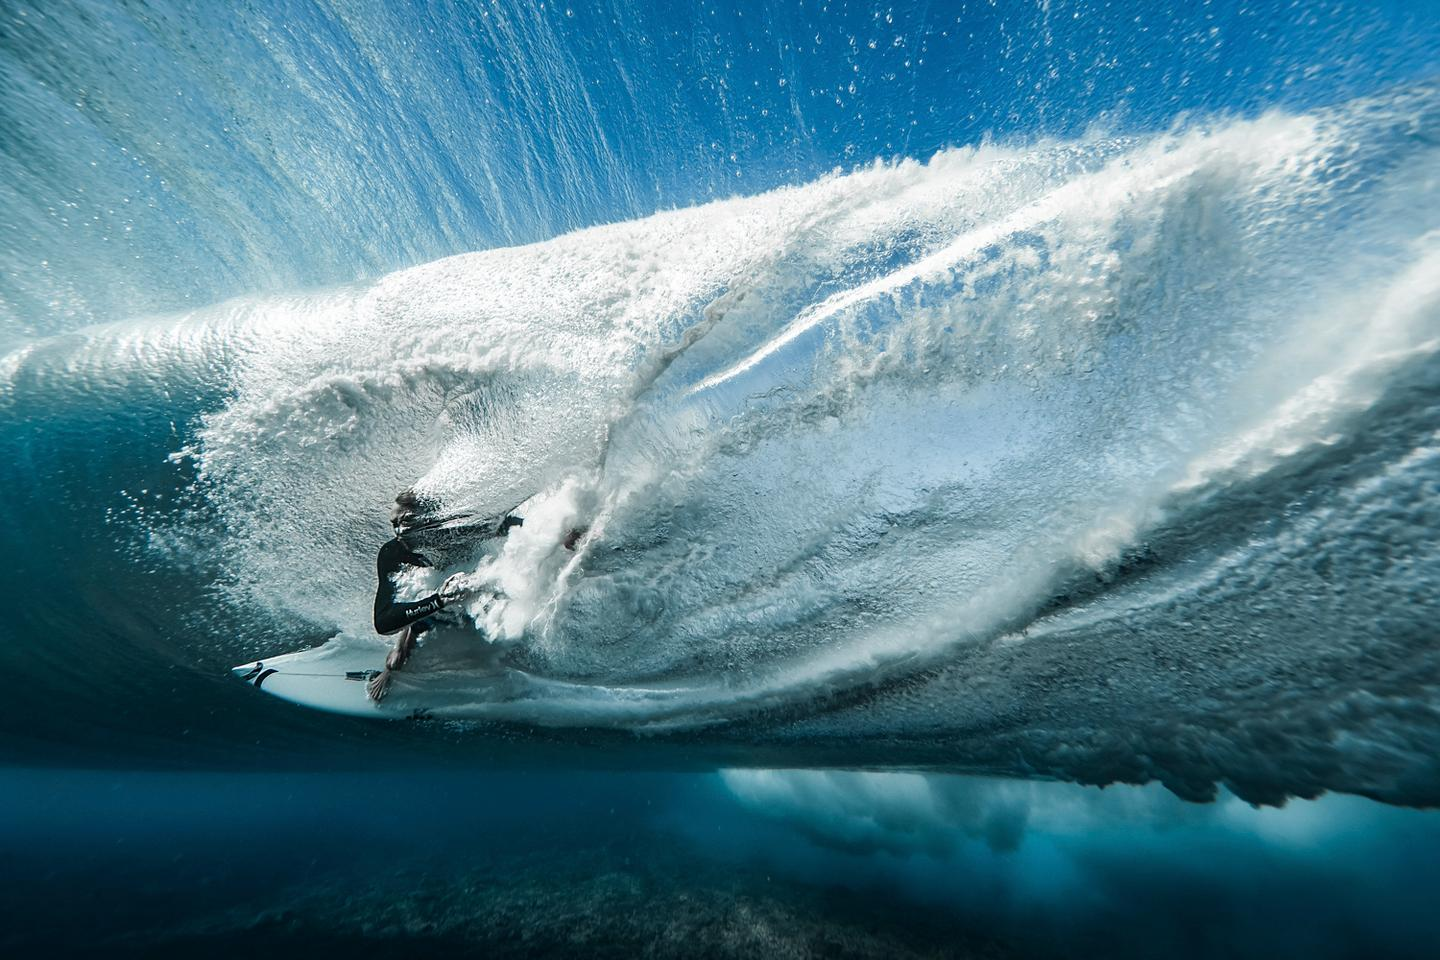 The Overall Winner was Ben Thouard from France, for a surreal underwater shot of surfer Ace Buchan. The winning photo was snapped in Teahupo'o, Tahiti, and also nabbed the top spot in the Energy category